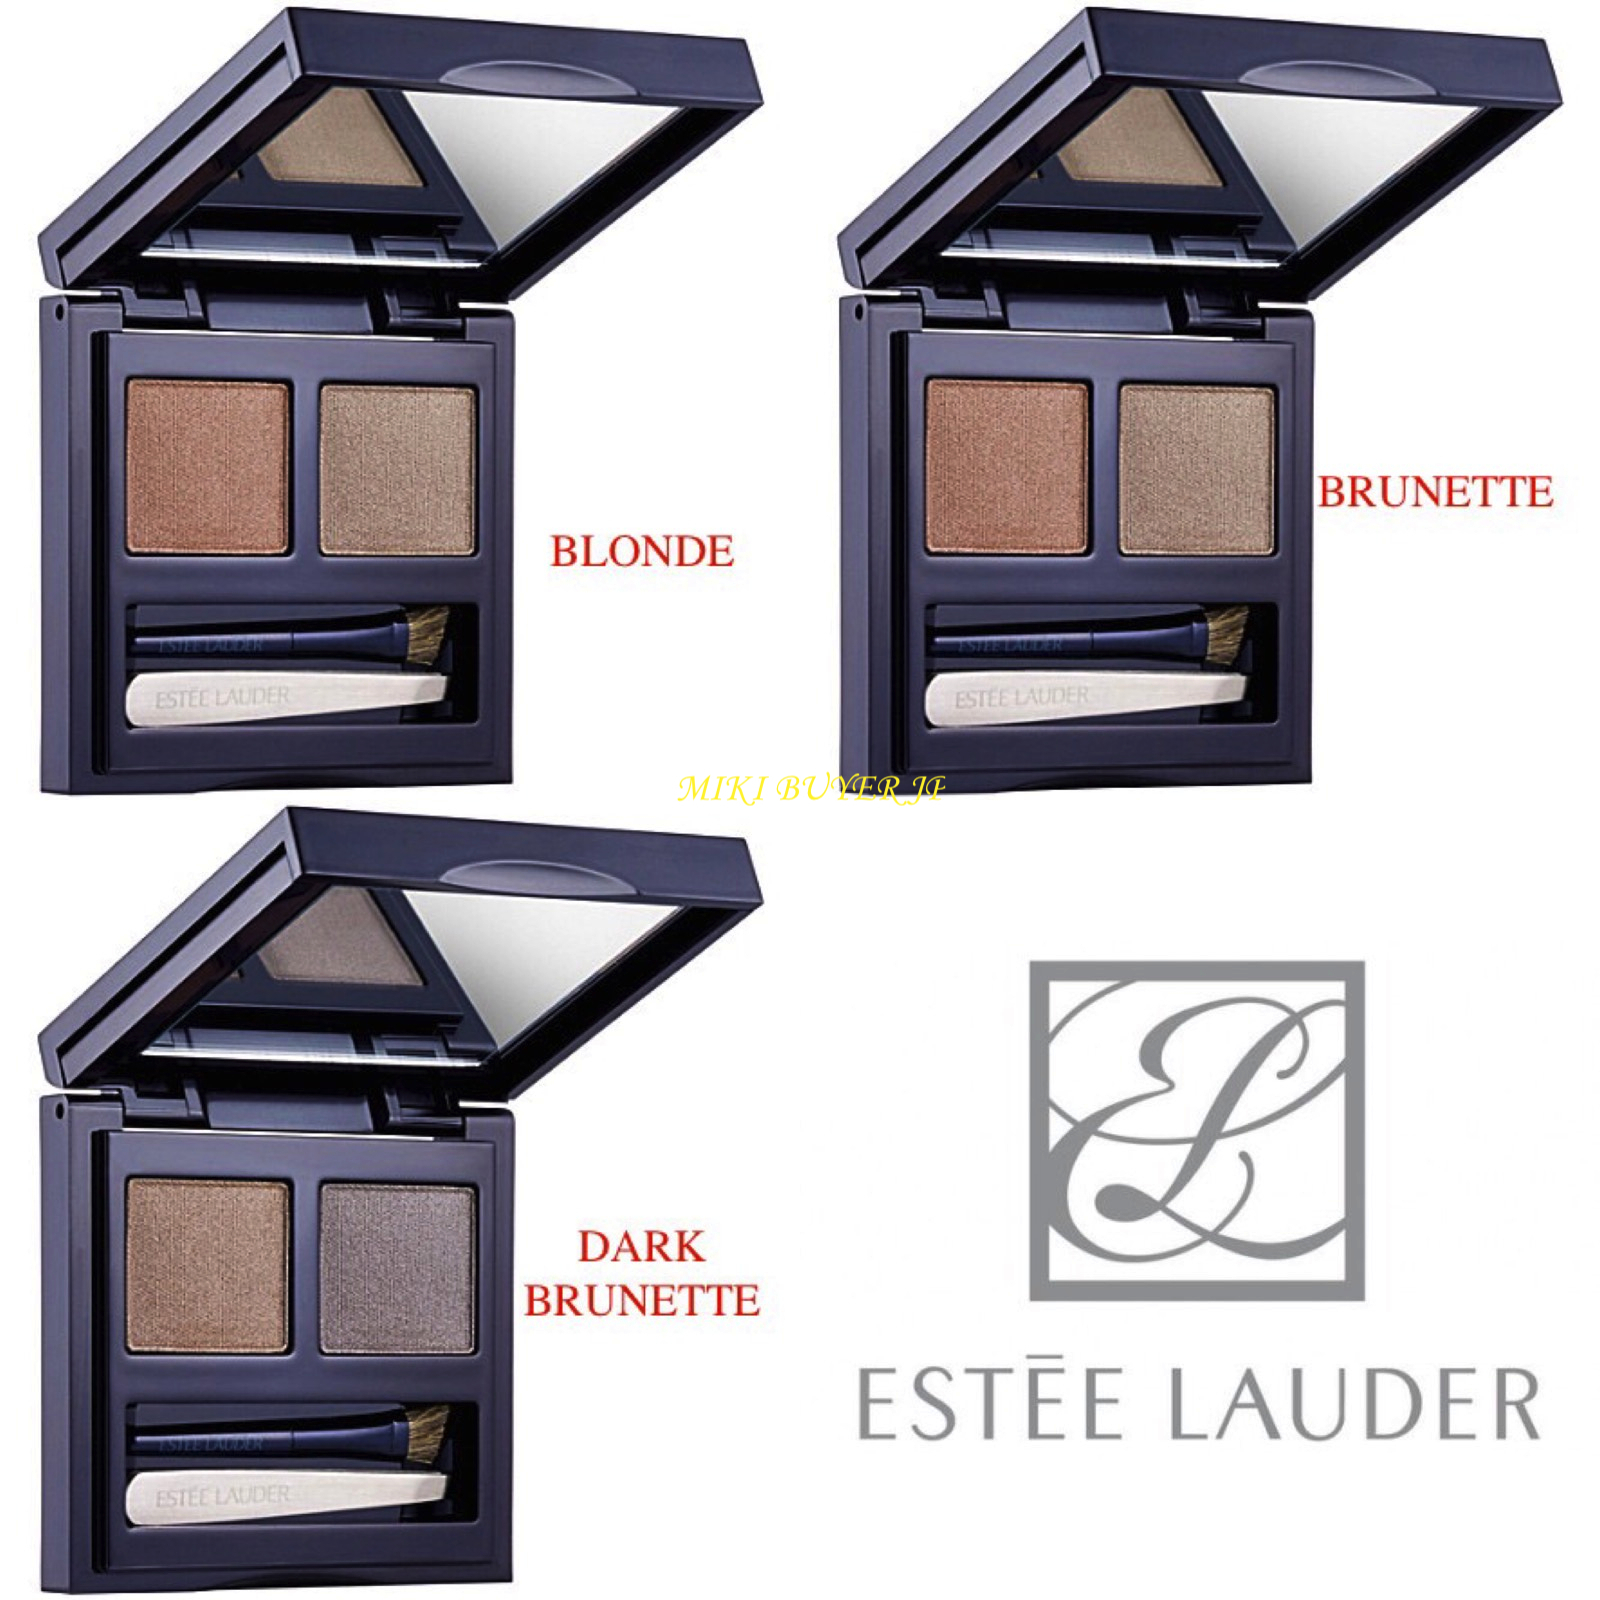 【関税・送料ゼロ】Estee Lauder Brow Now kit